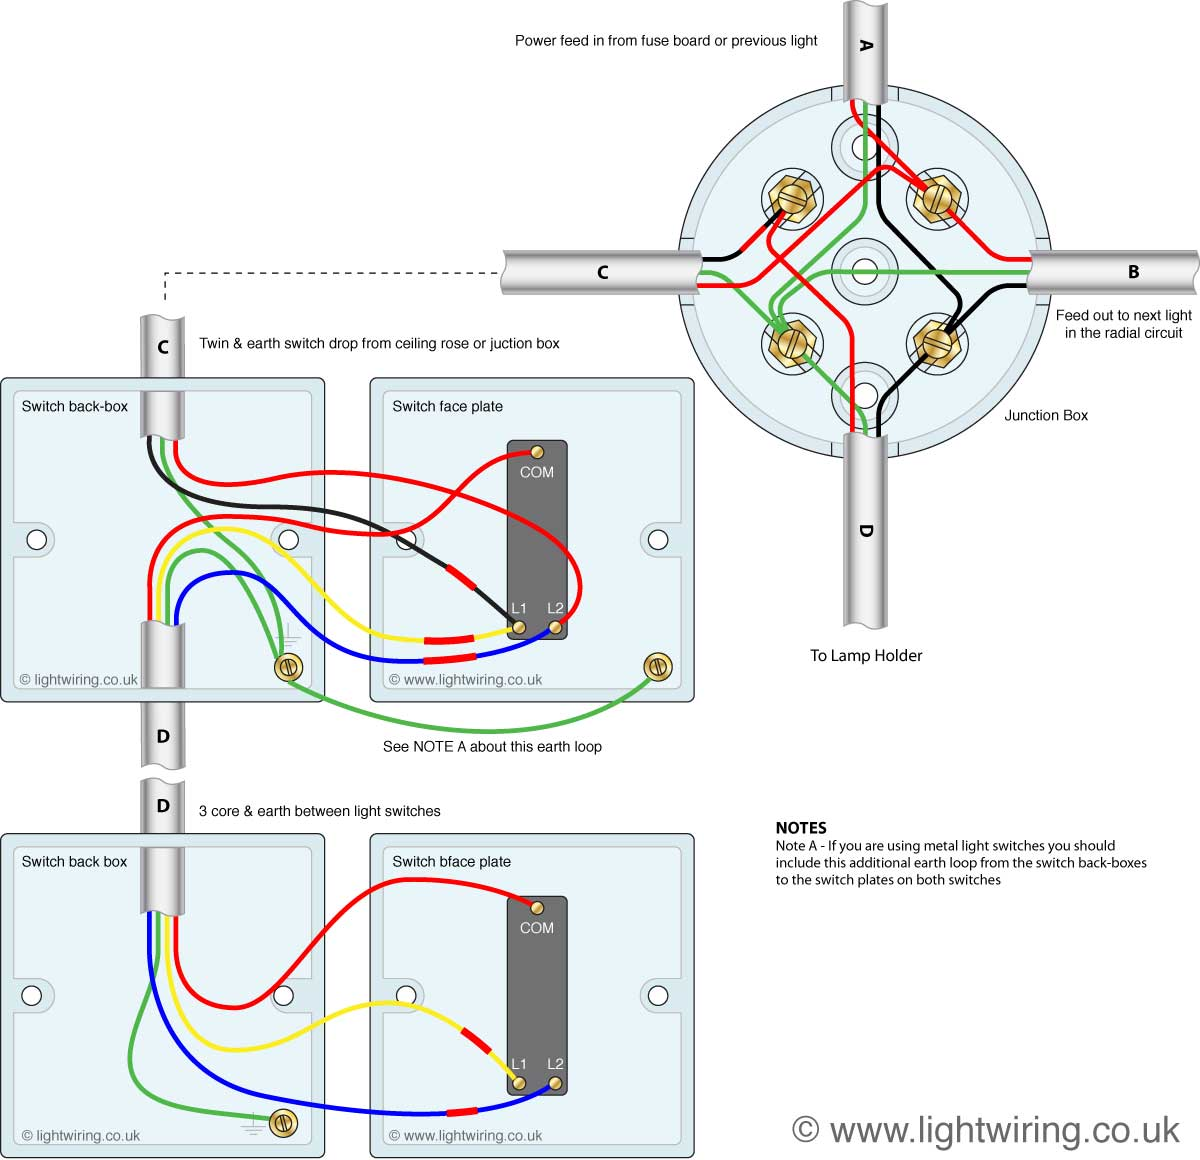 loop wire diagram 2 way switch 3 wire system old cable colours light wiring 3 way switching wired to loop wiring diagram instrumentation images